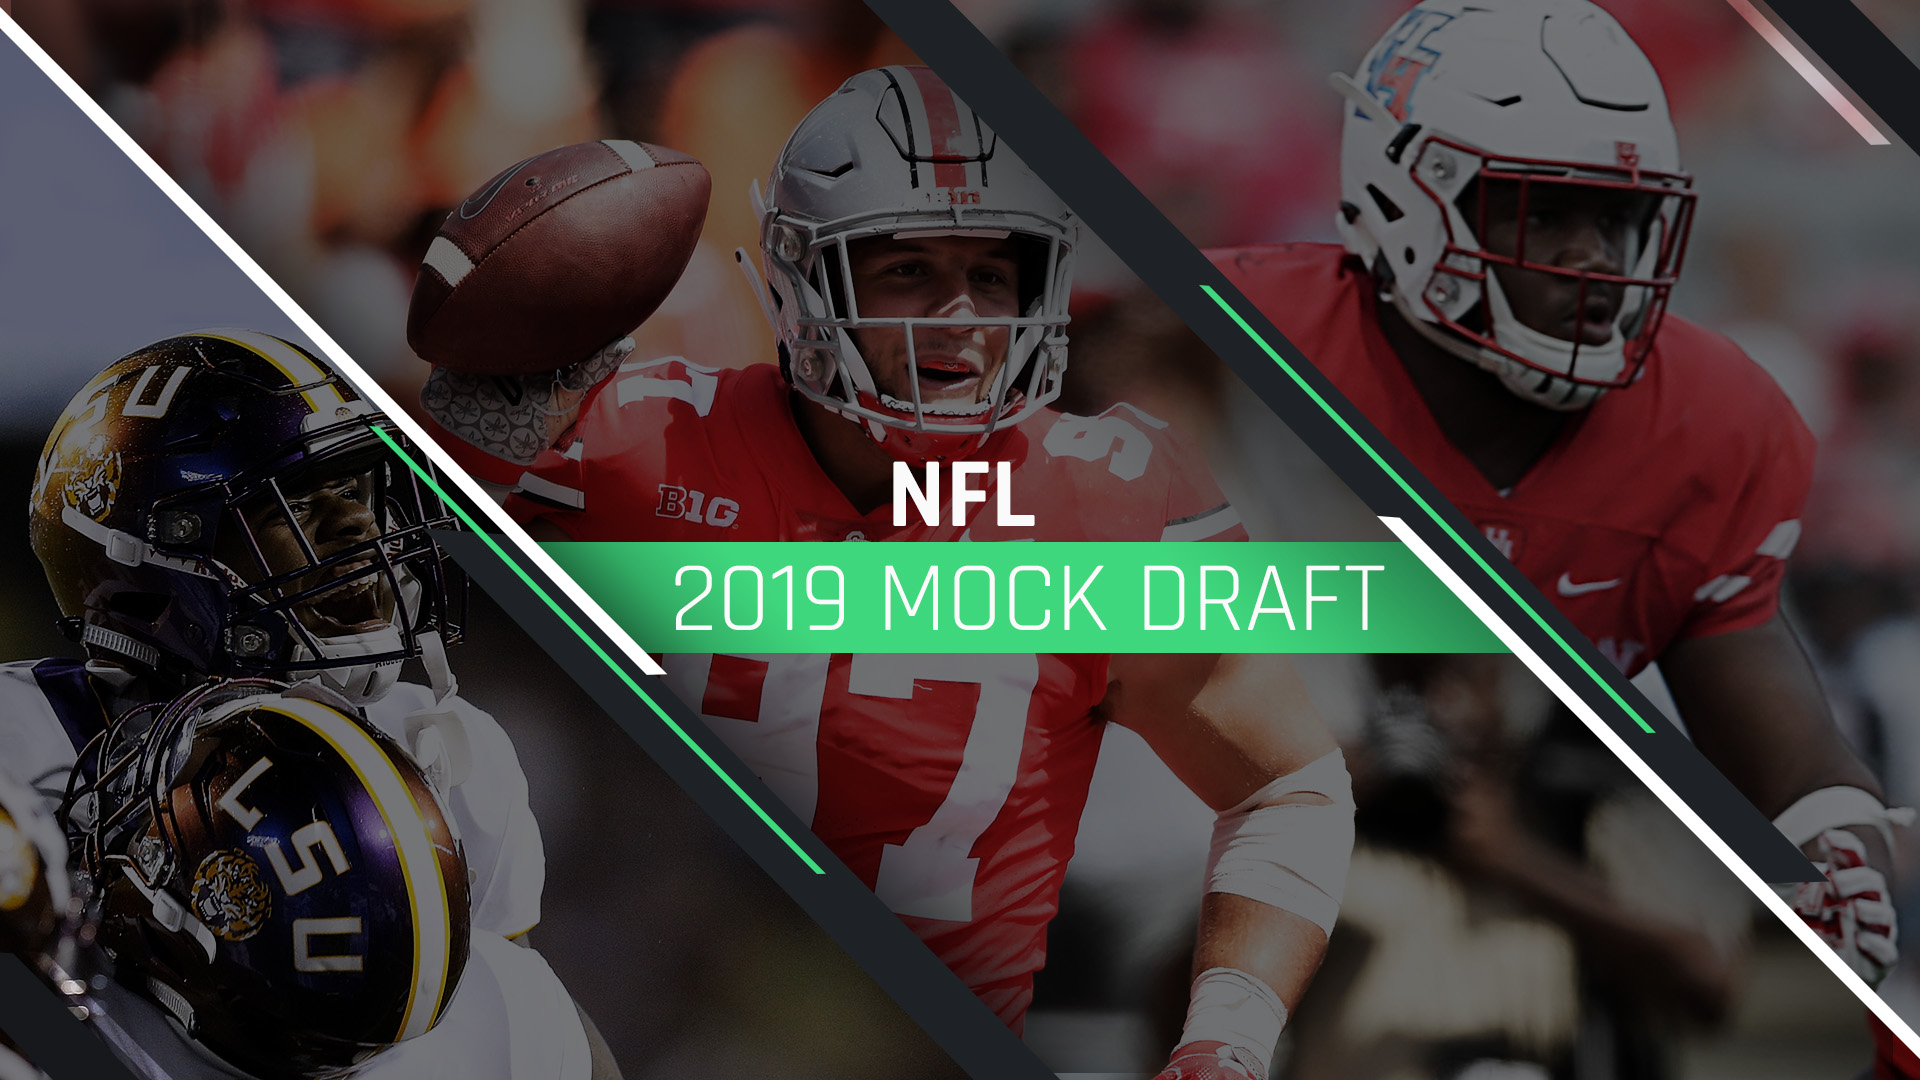 Nfl-mock-draft-103118-getty-ftr_etjnrgply42i11fi2qy9bg483